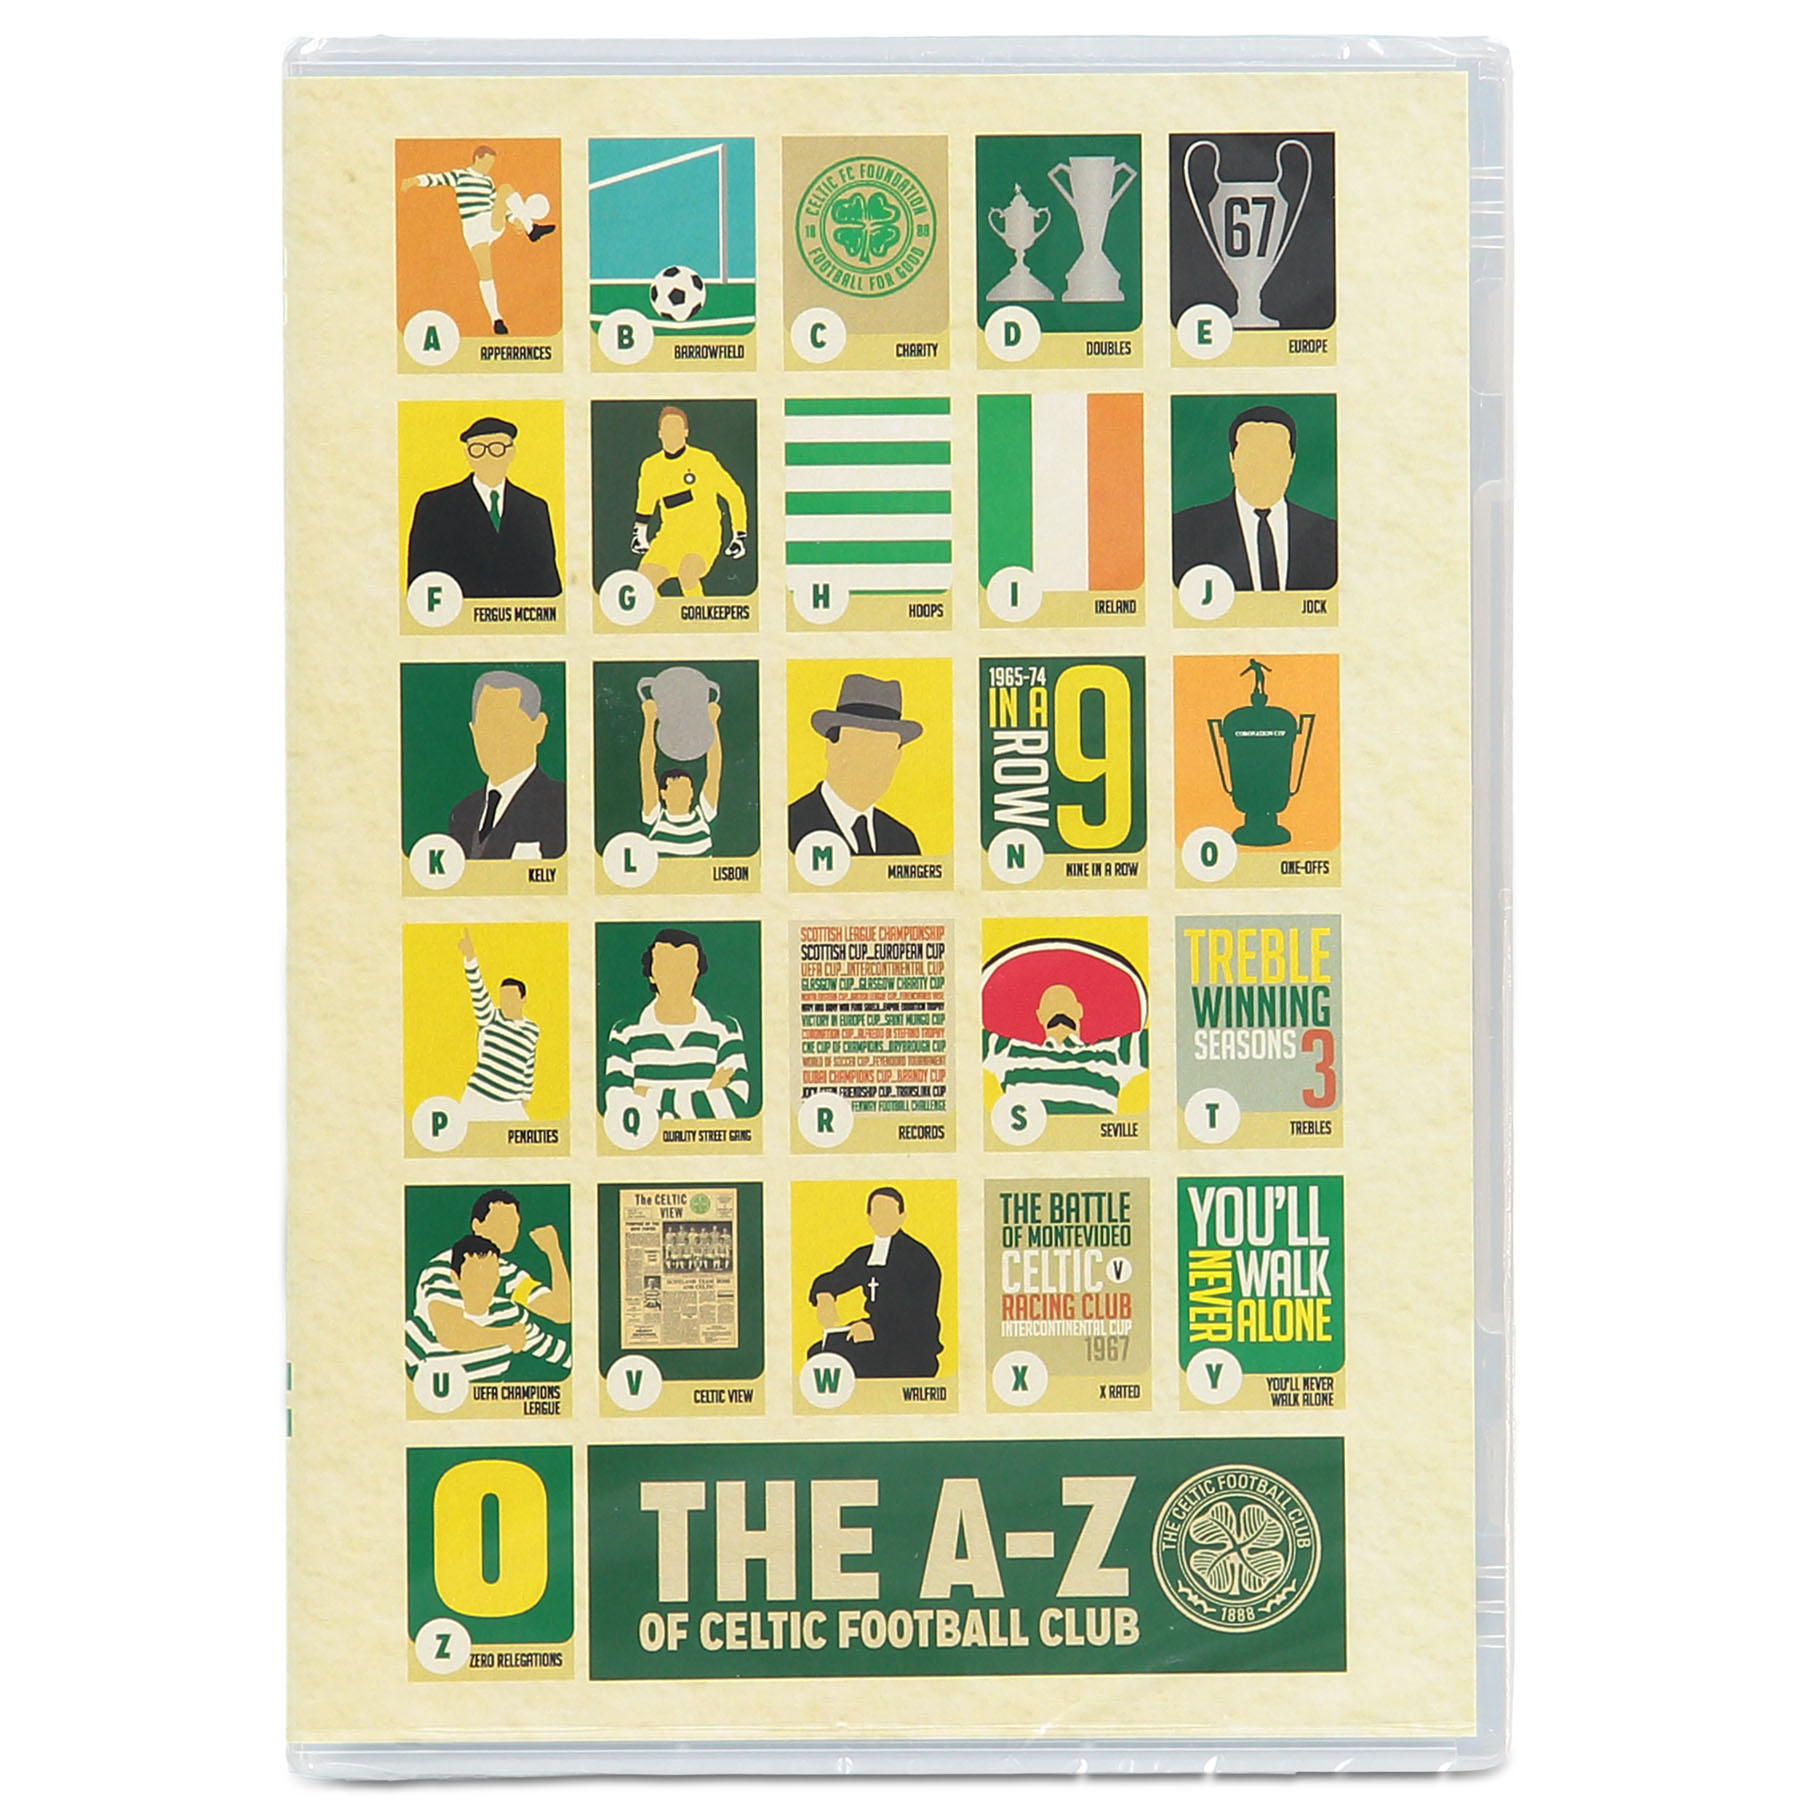 Celtic The A to Z of Celtic Football Club DVD